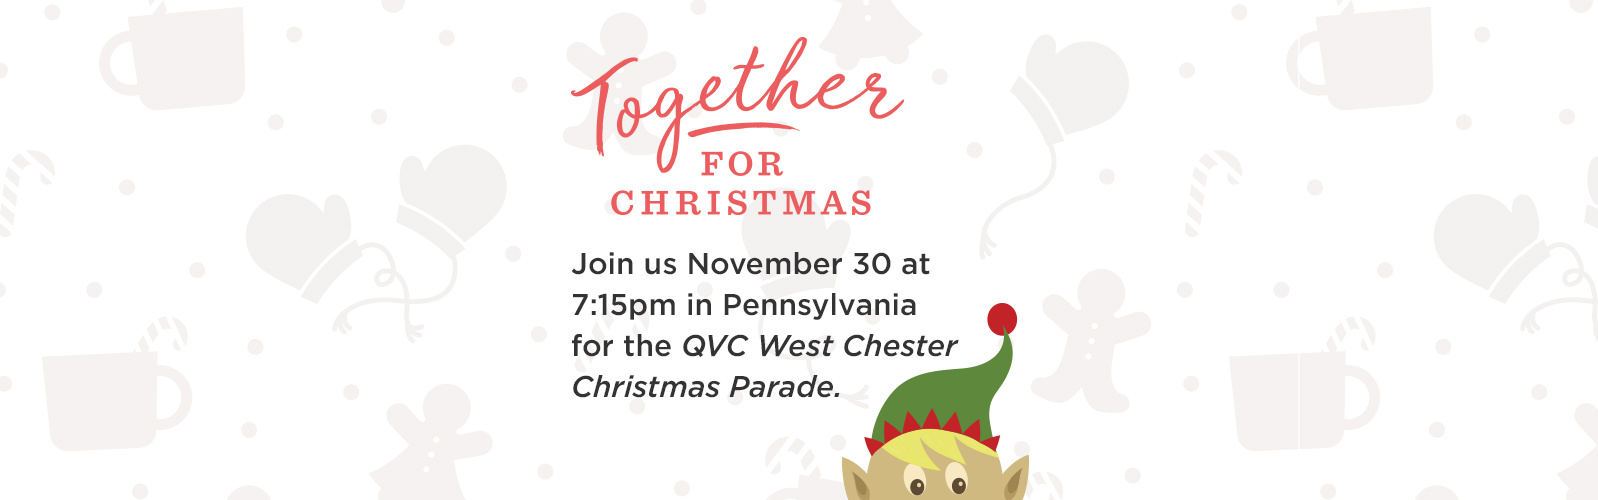 Together for Christmas.  Join us November 30 at 7:15pm in Pennsylvania for the QVC West Chester Christmas Parade.